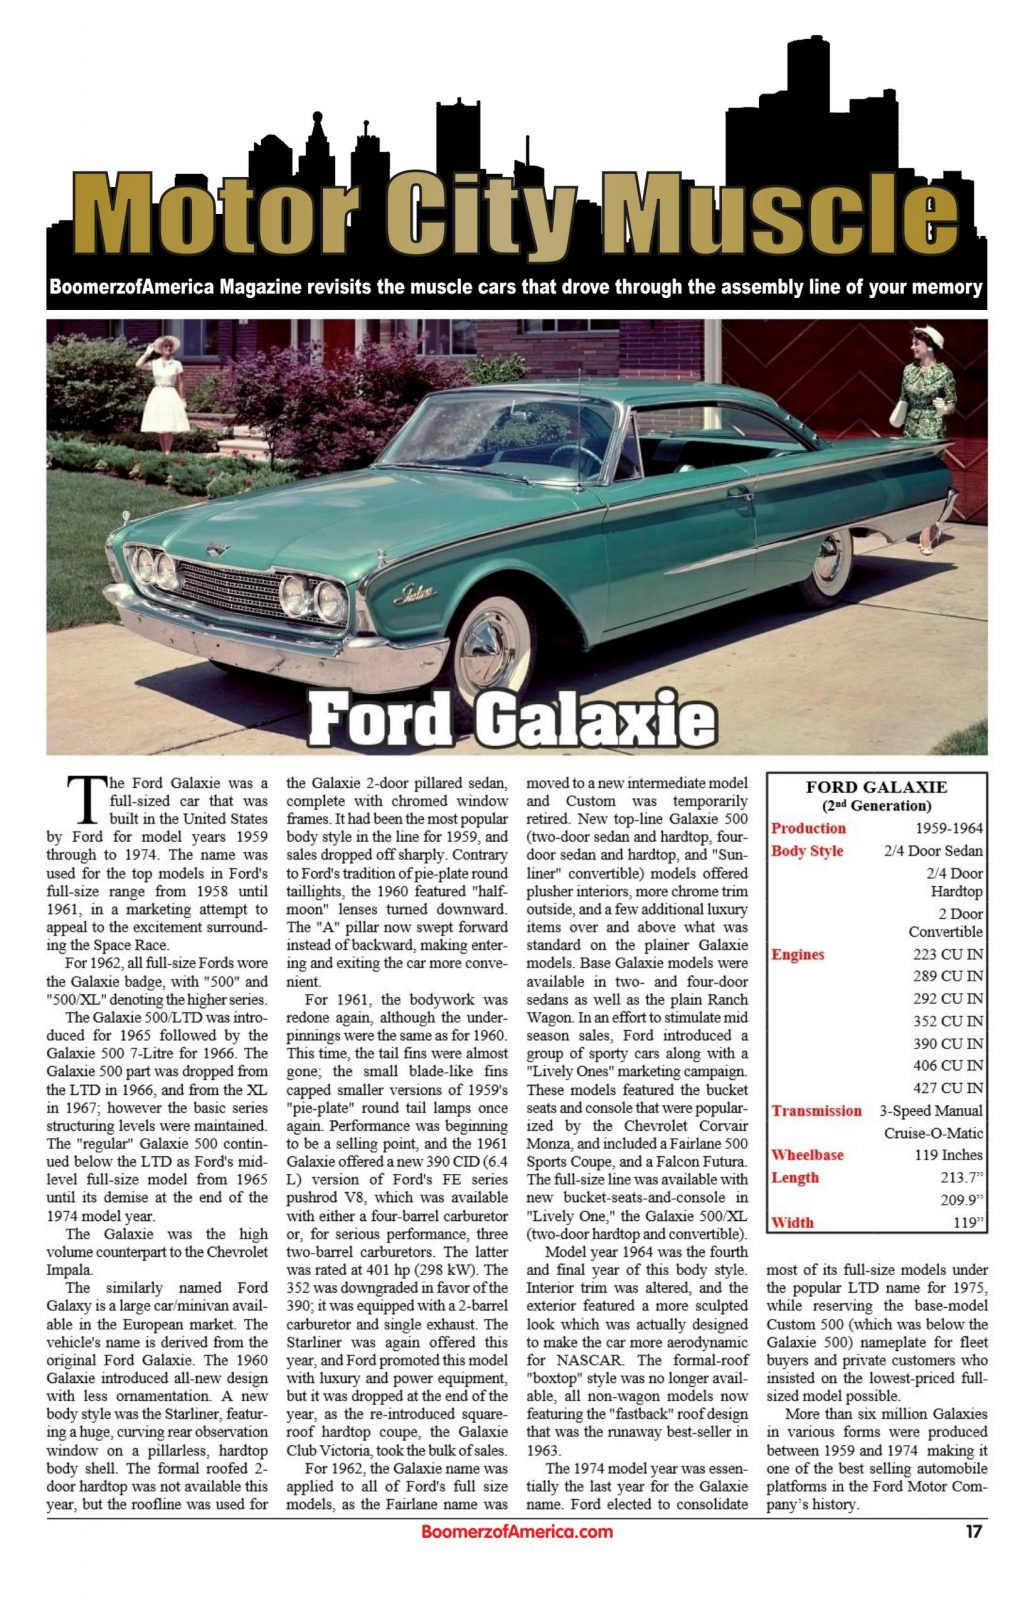 Motor City Muscle 1960 Ford Galaxie - Boomerz of America June 2019